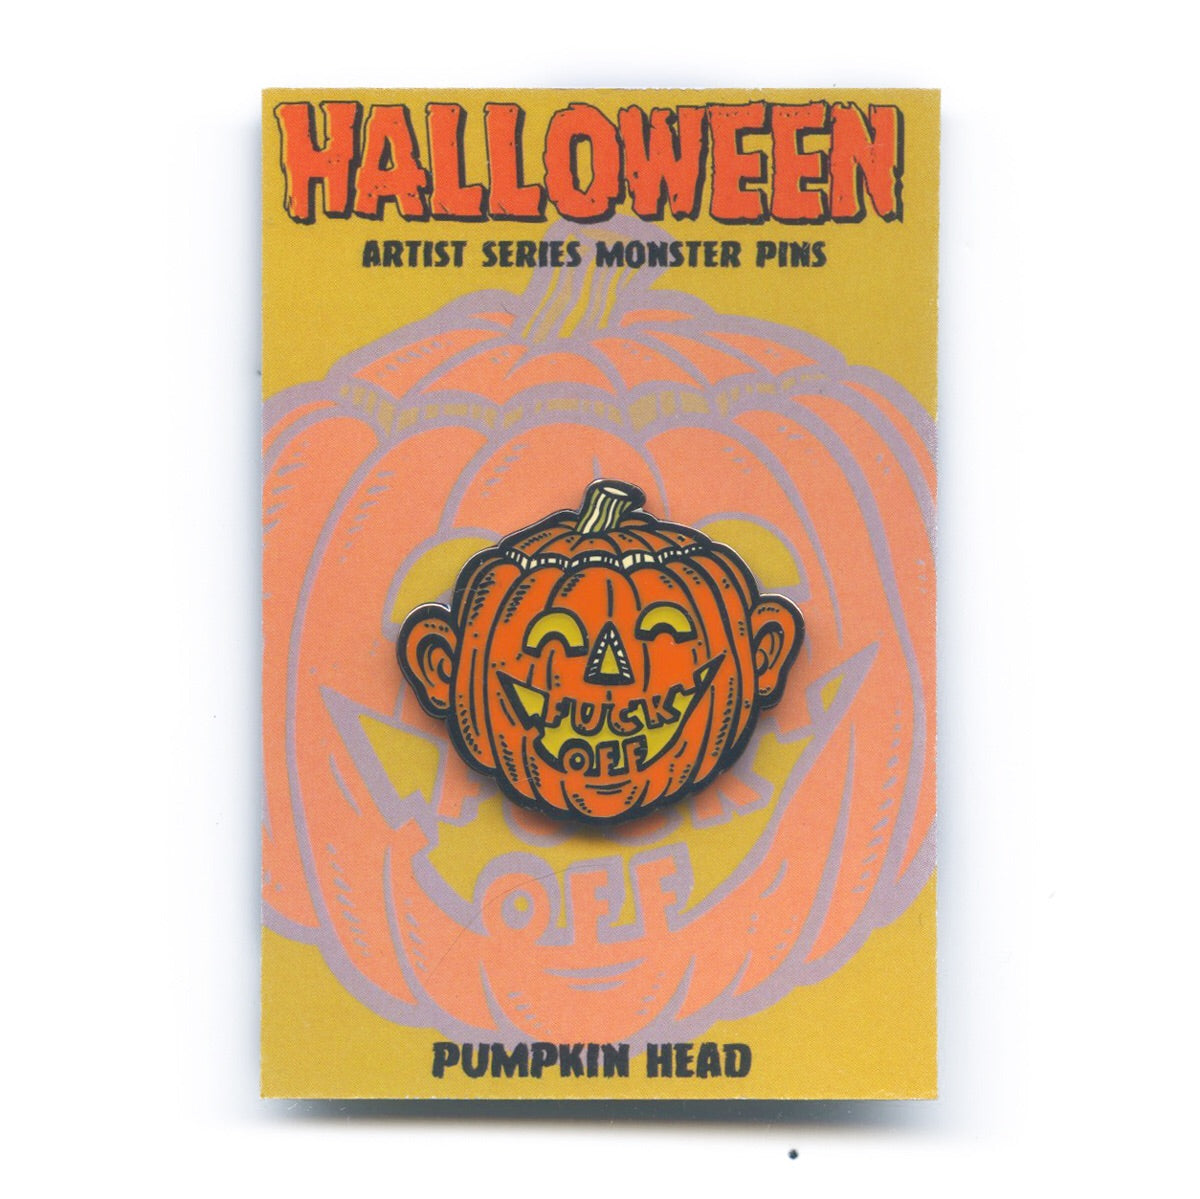 BURRITO BREATH - Pumpkin Head